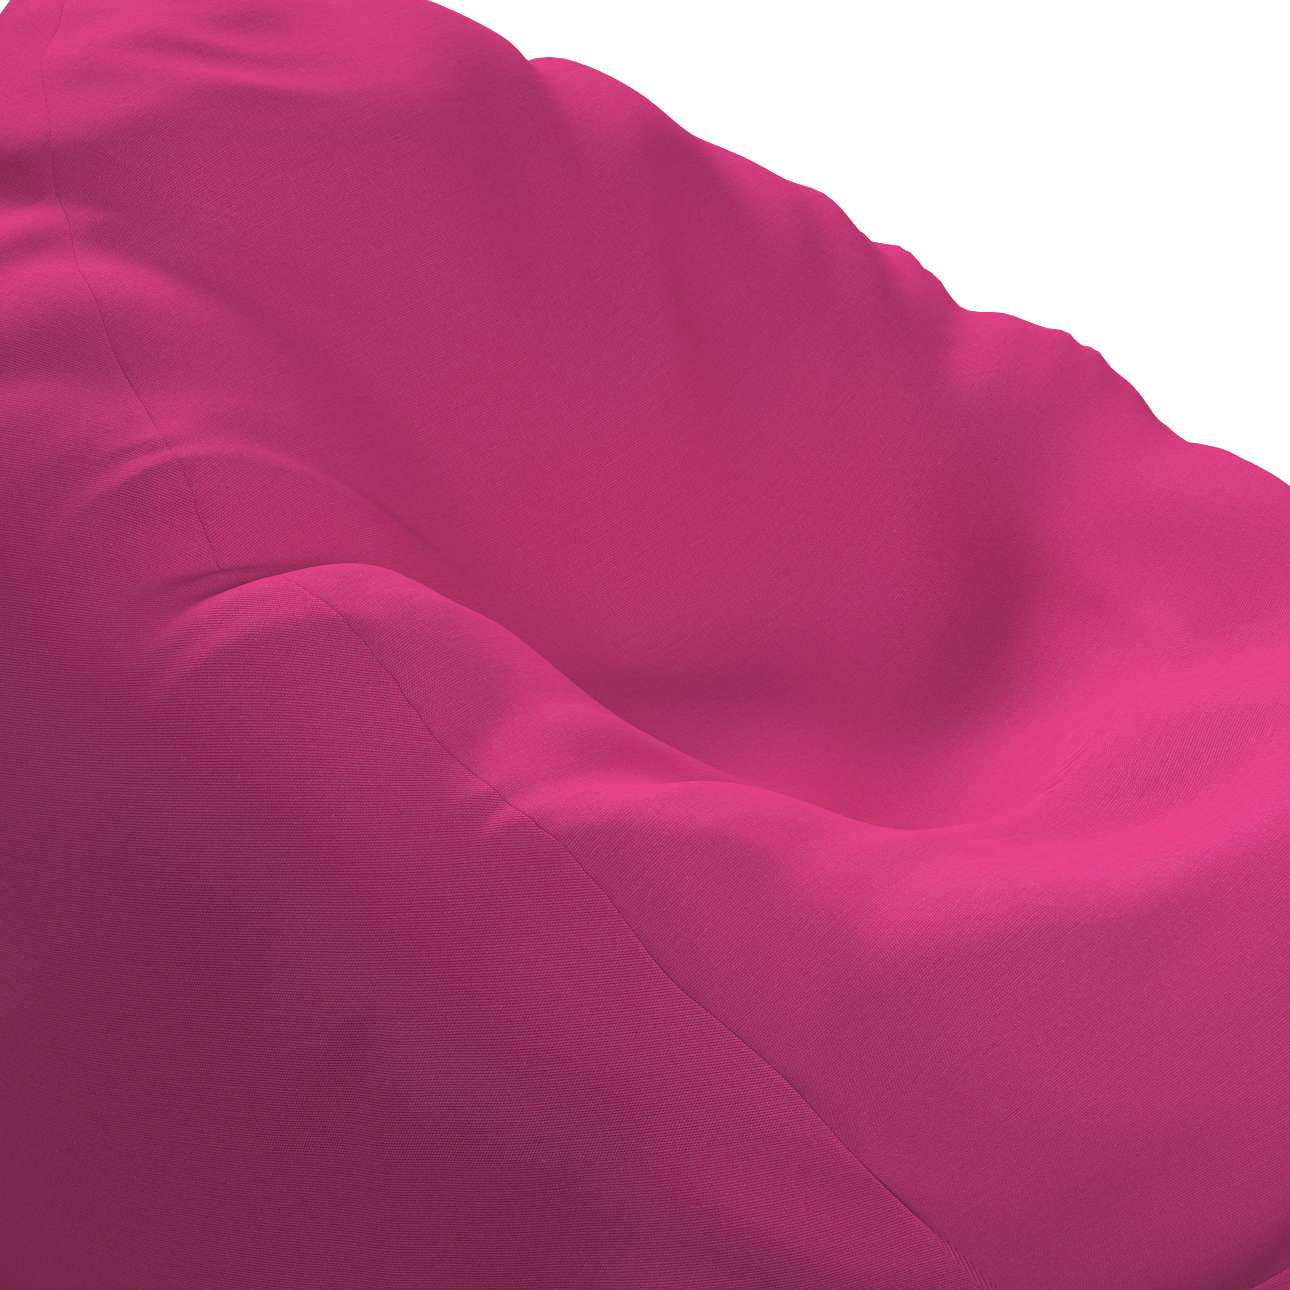 Beanbag Bowlie in collection Happiness, fabric: 133-60